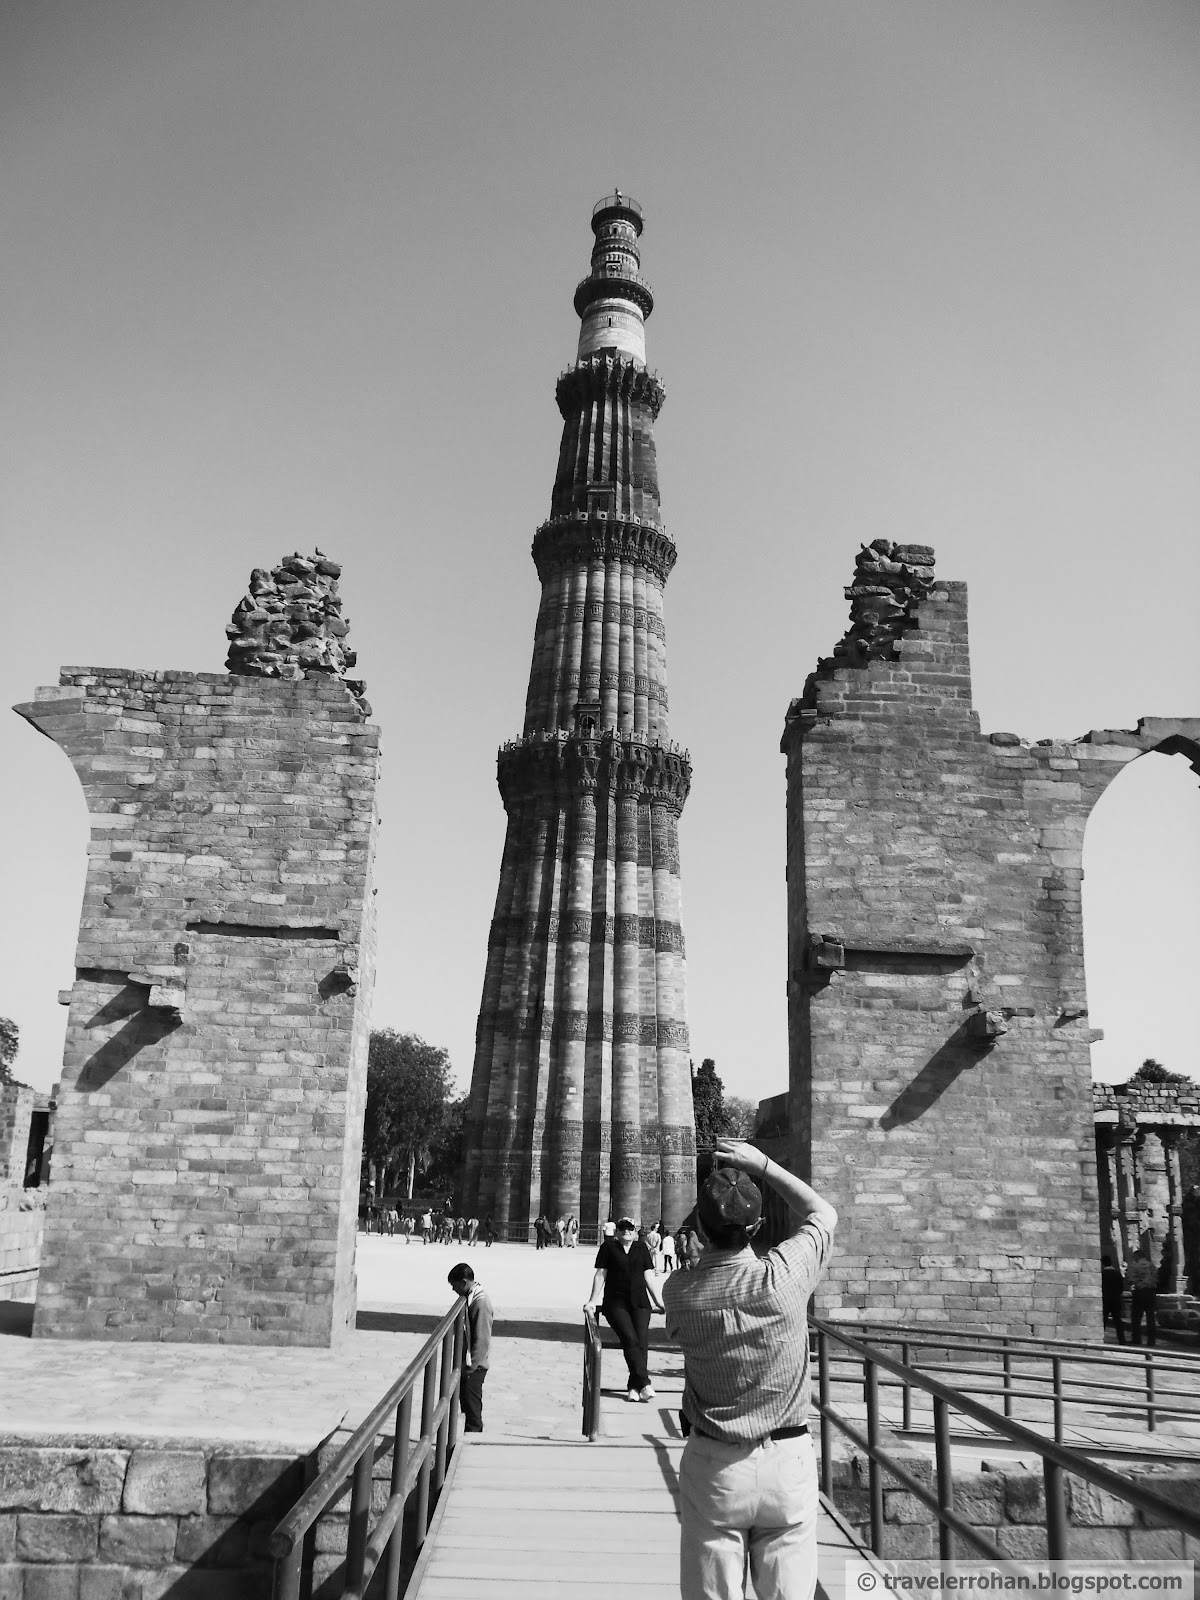 Qutb minar picture taken from amongst the ruins of quwwat ul islam mosque extended by iltutmish